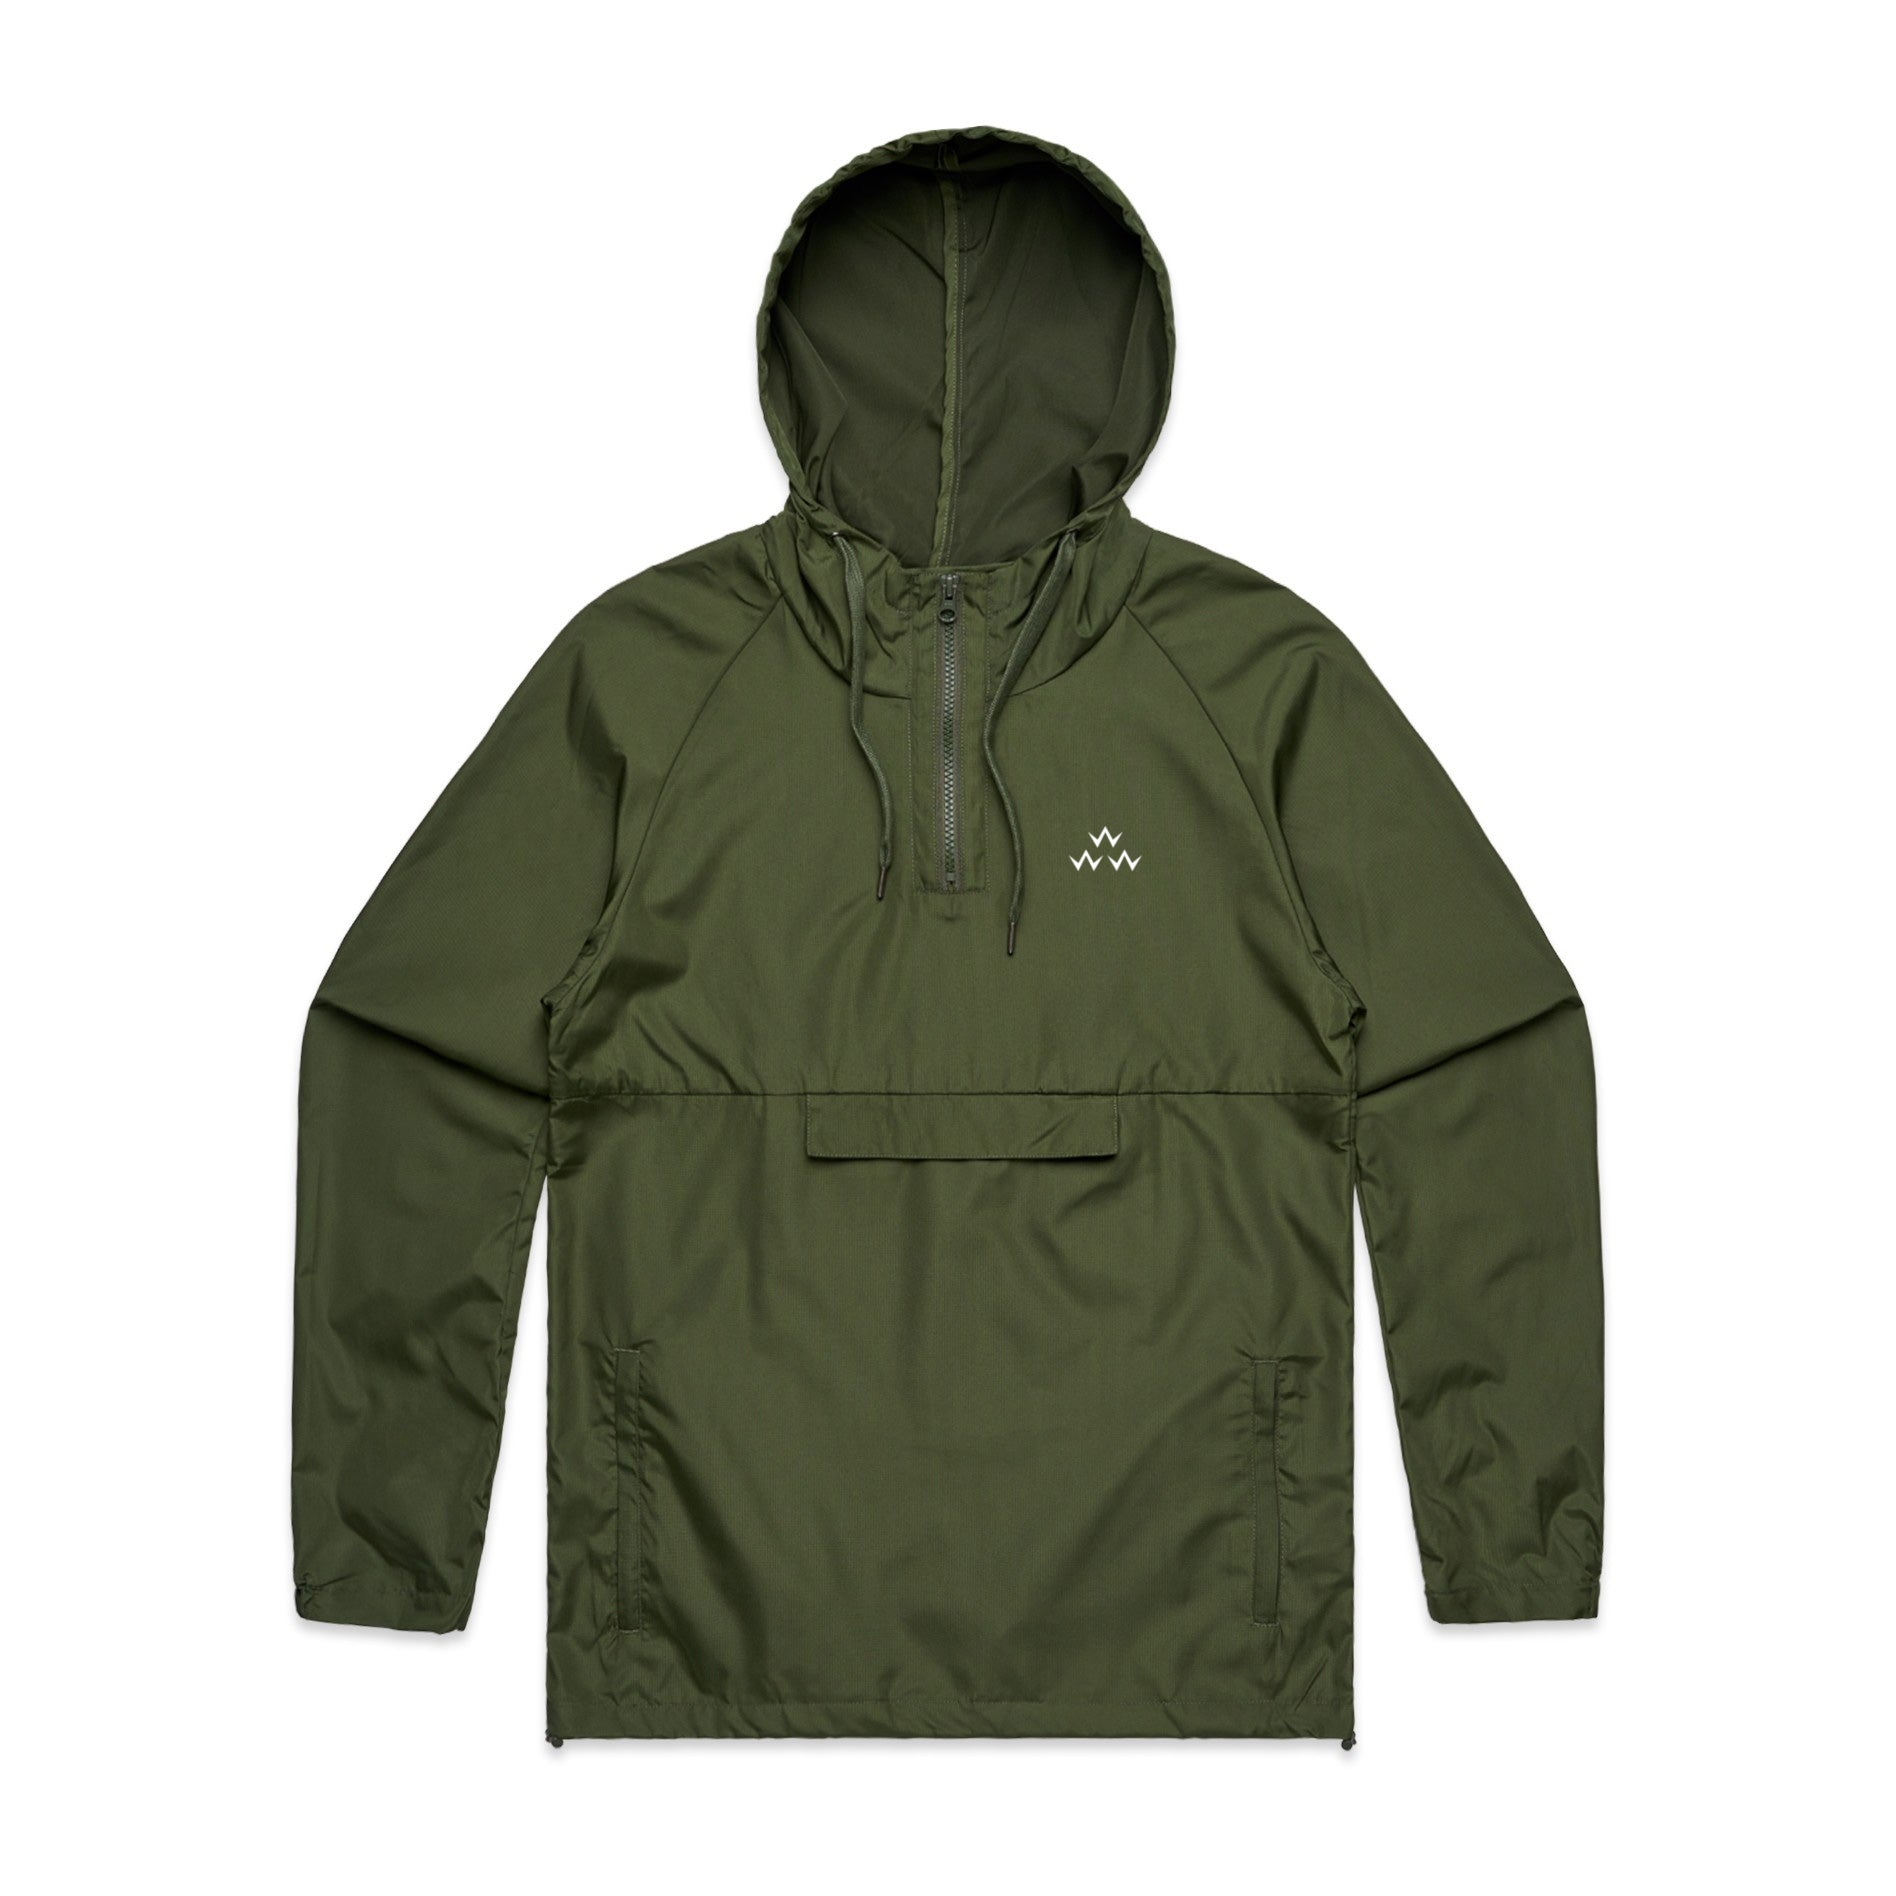 birds-of-condor-green-windbreaker-golf-jacket